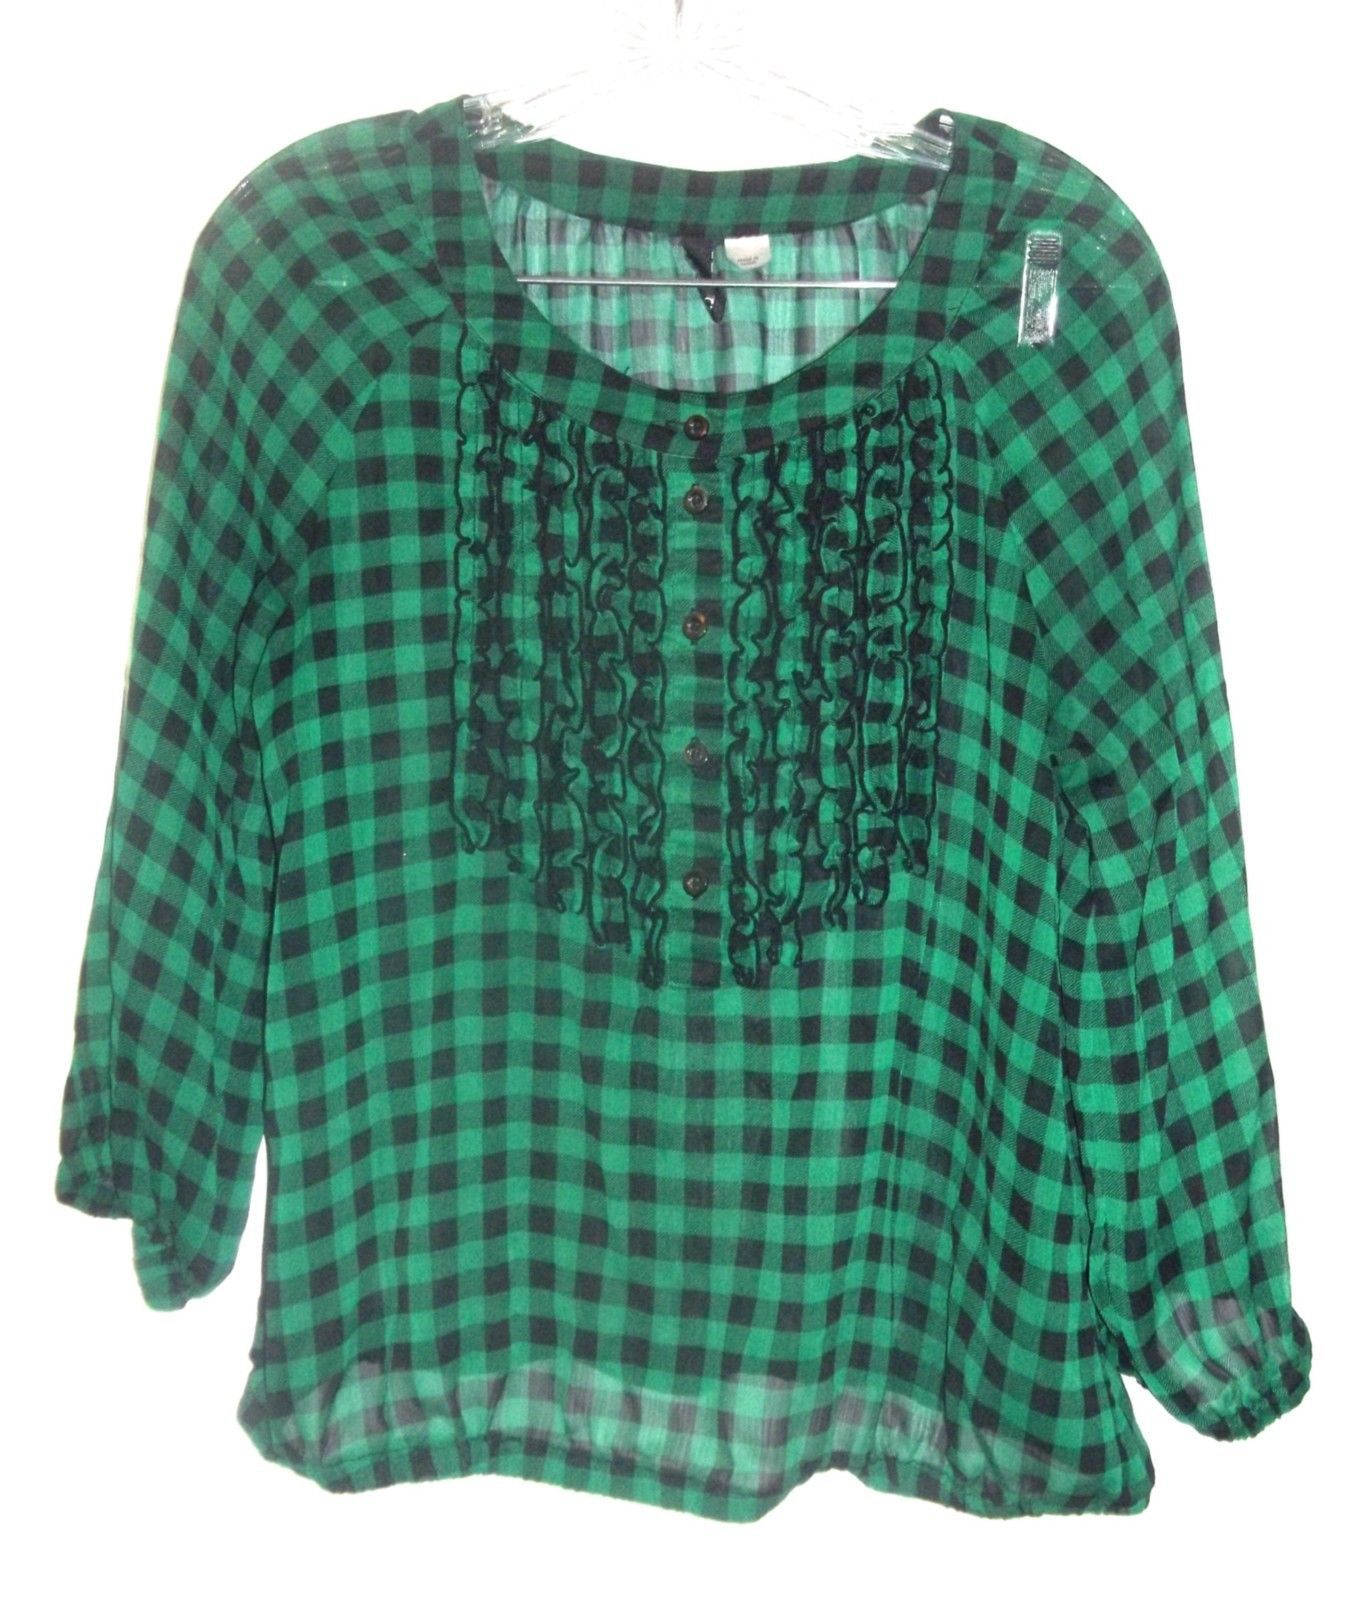 Green and Black Checkered Plaid Top Sheer Long Sleeve Top by Divided H&M Sz 10 - $25.64